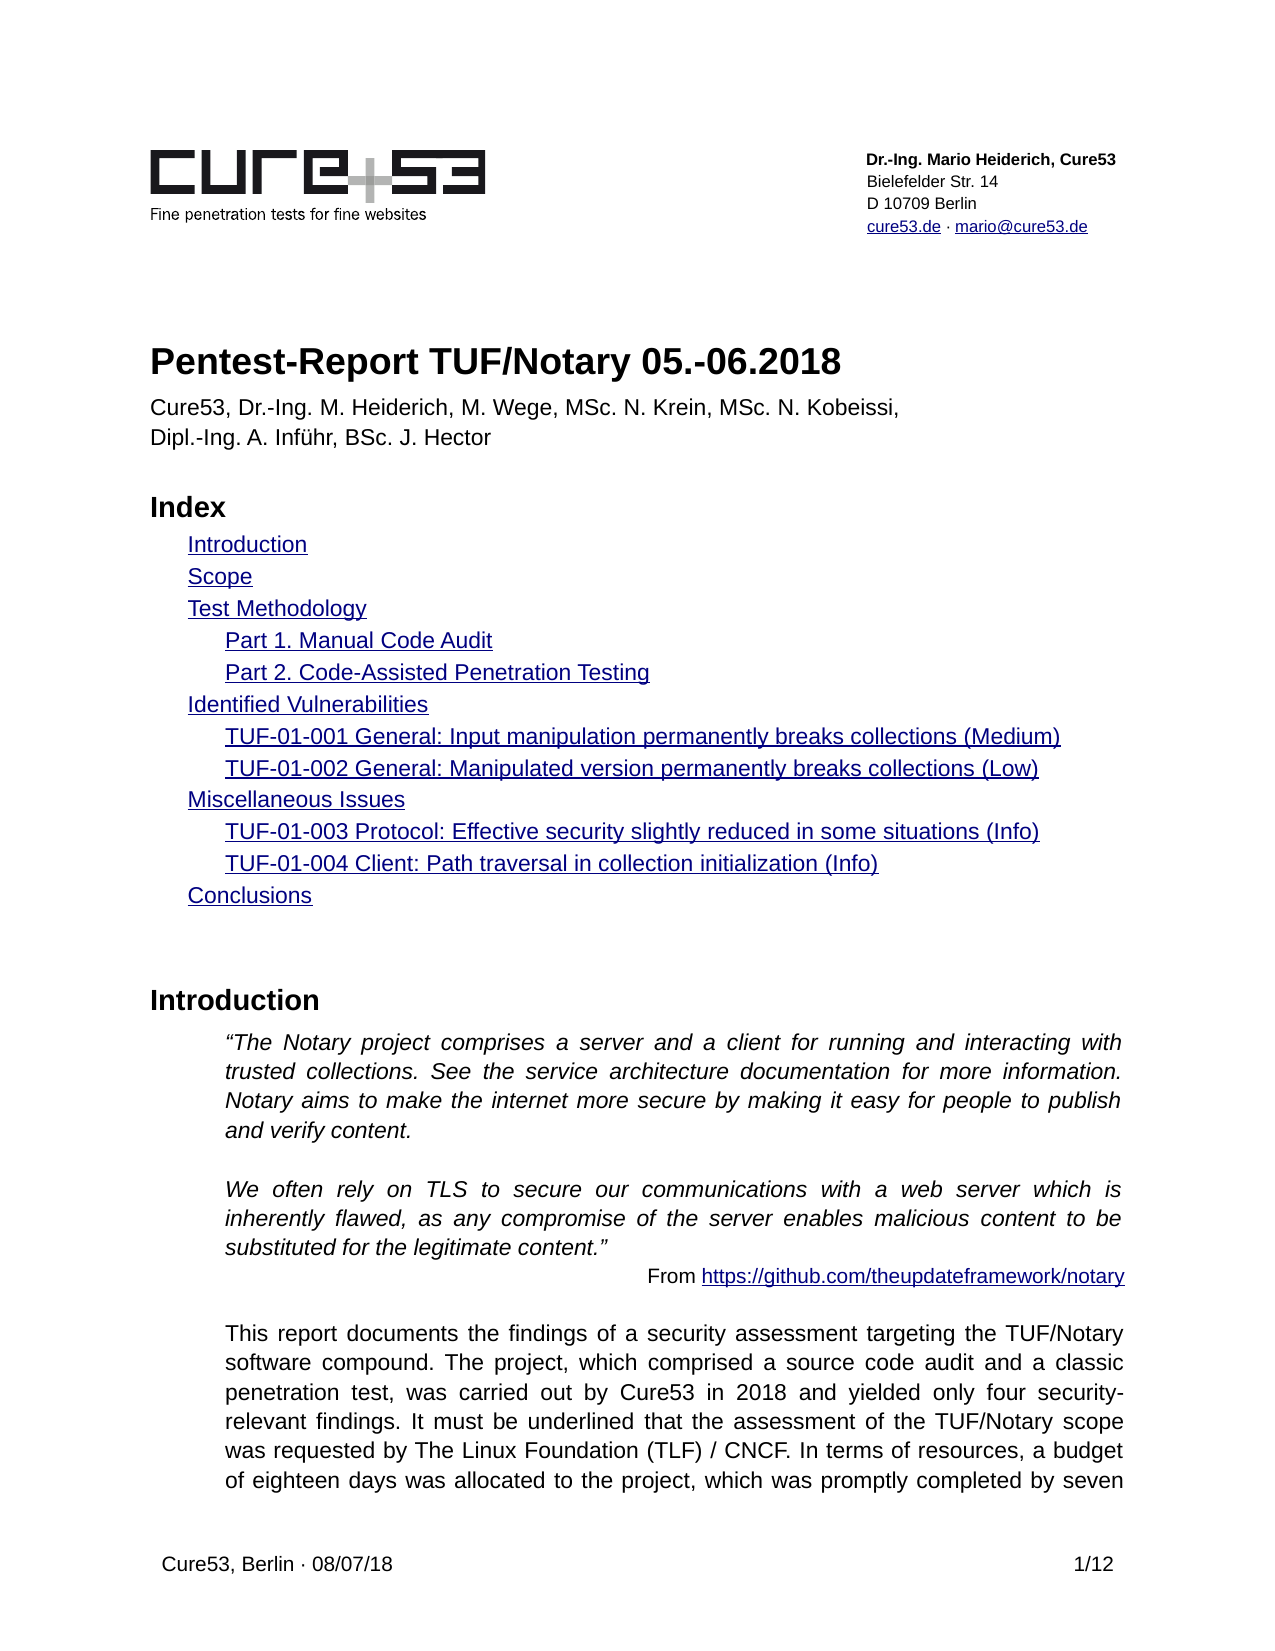 First page of the 'pentest-report tuf' PDF